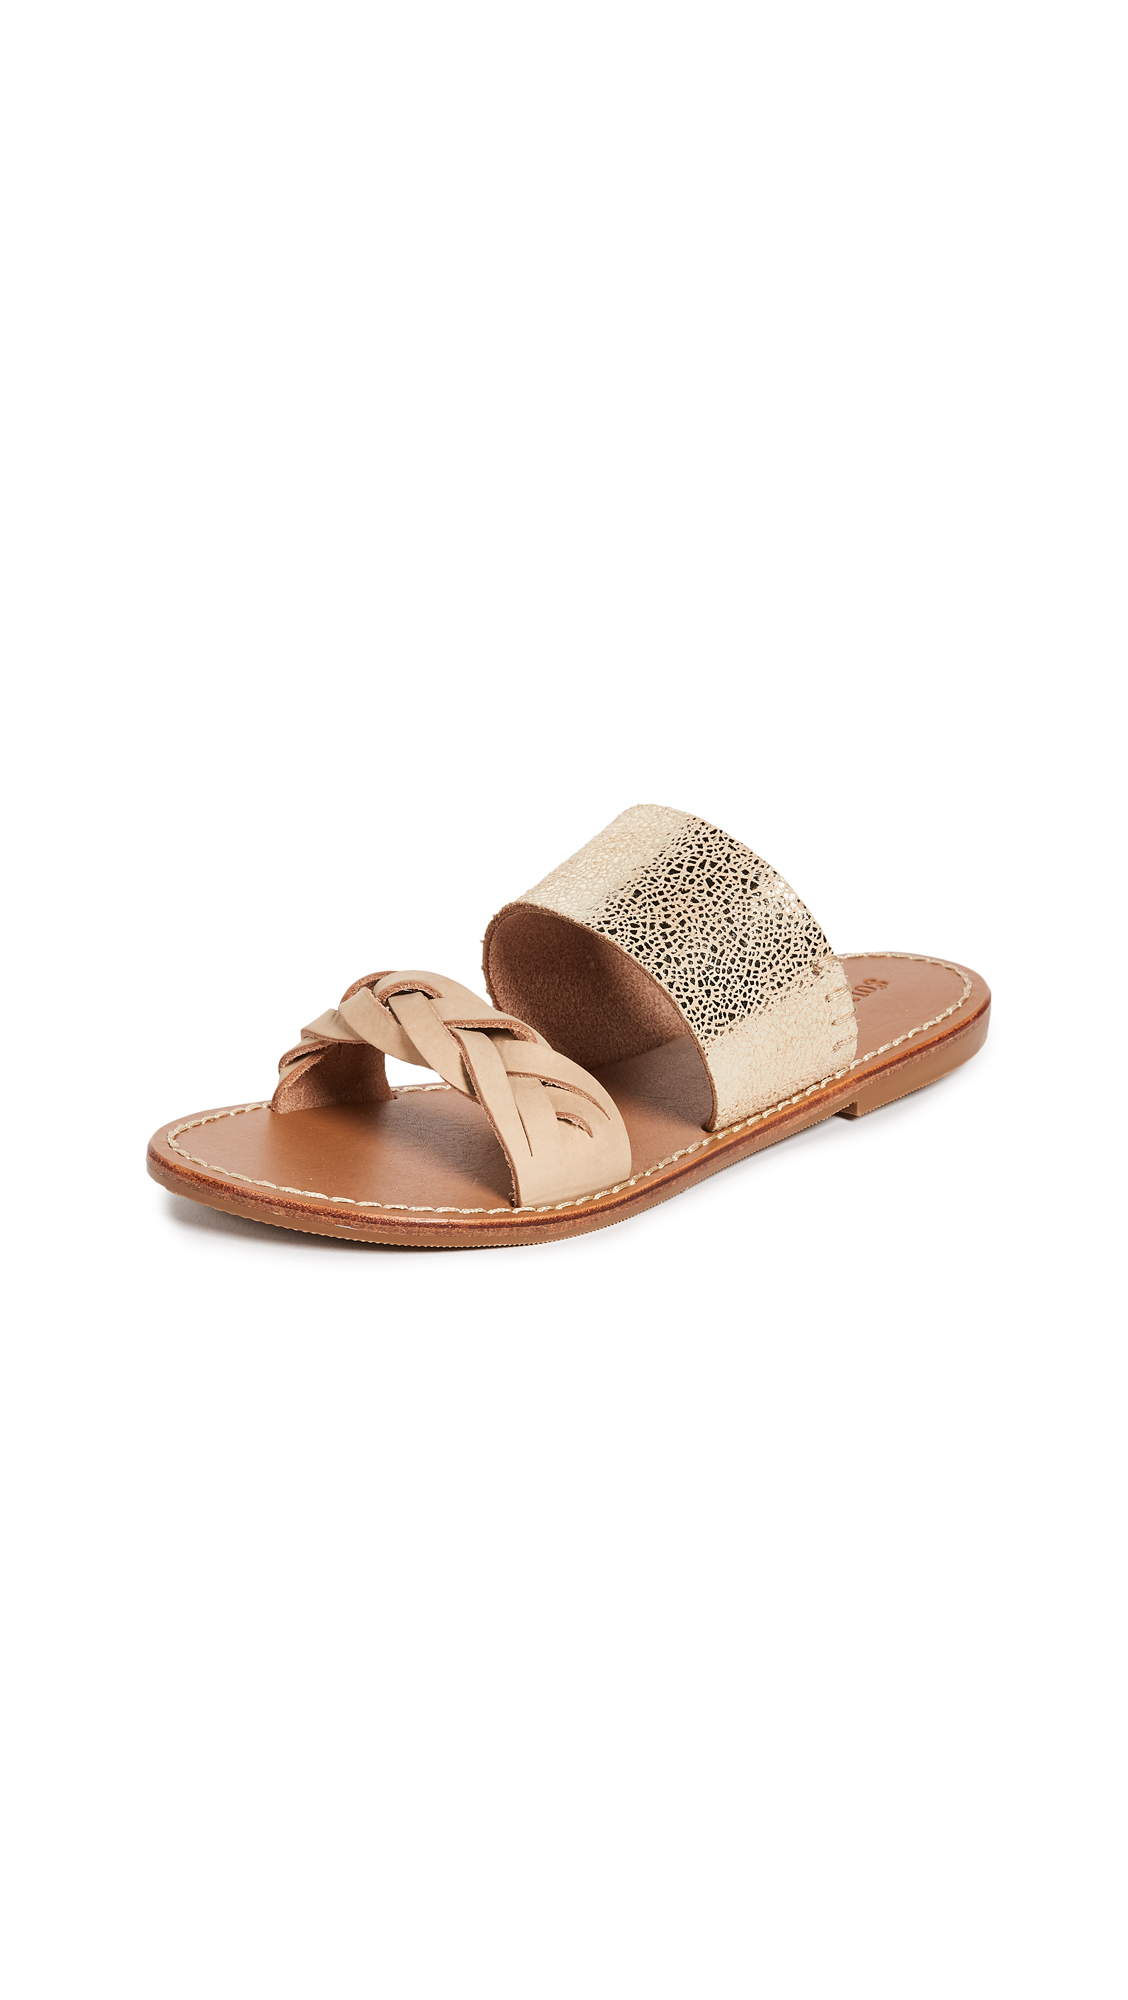 Soludos Metallic Braided Slides - Nude/Pale Gold